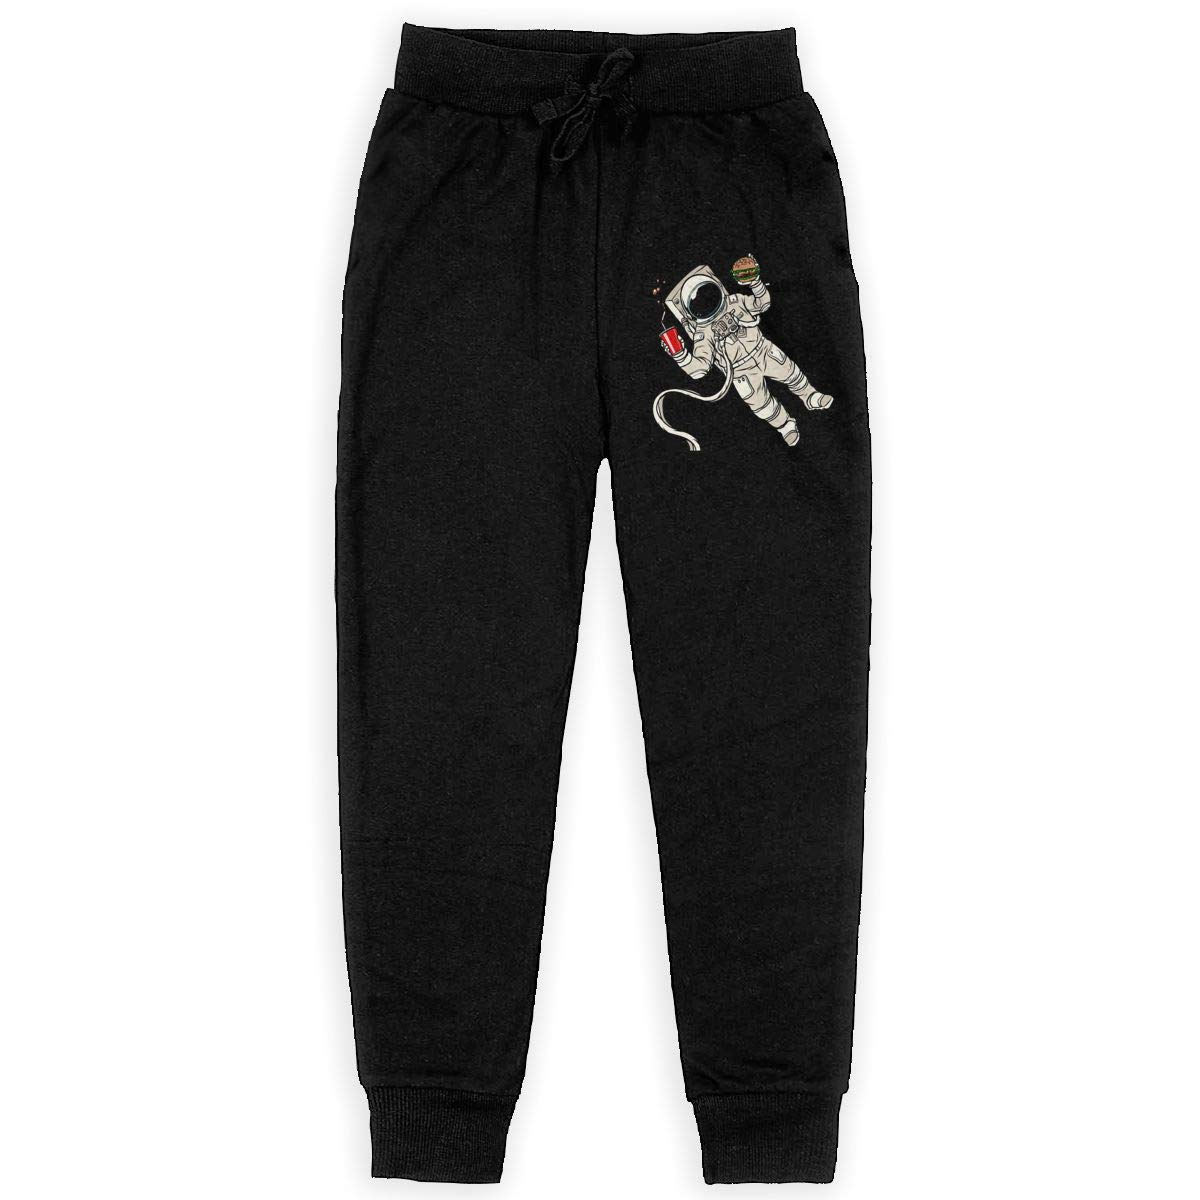 Xinding Youth Casual Training Sweatpants Astronauts Eating Hamburgers Adjustable Waist Trousers with Pocket